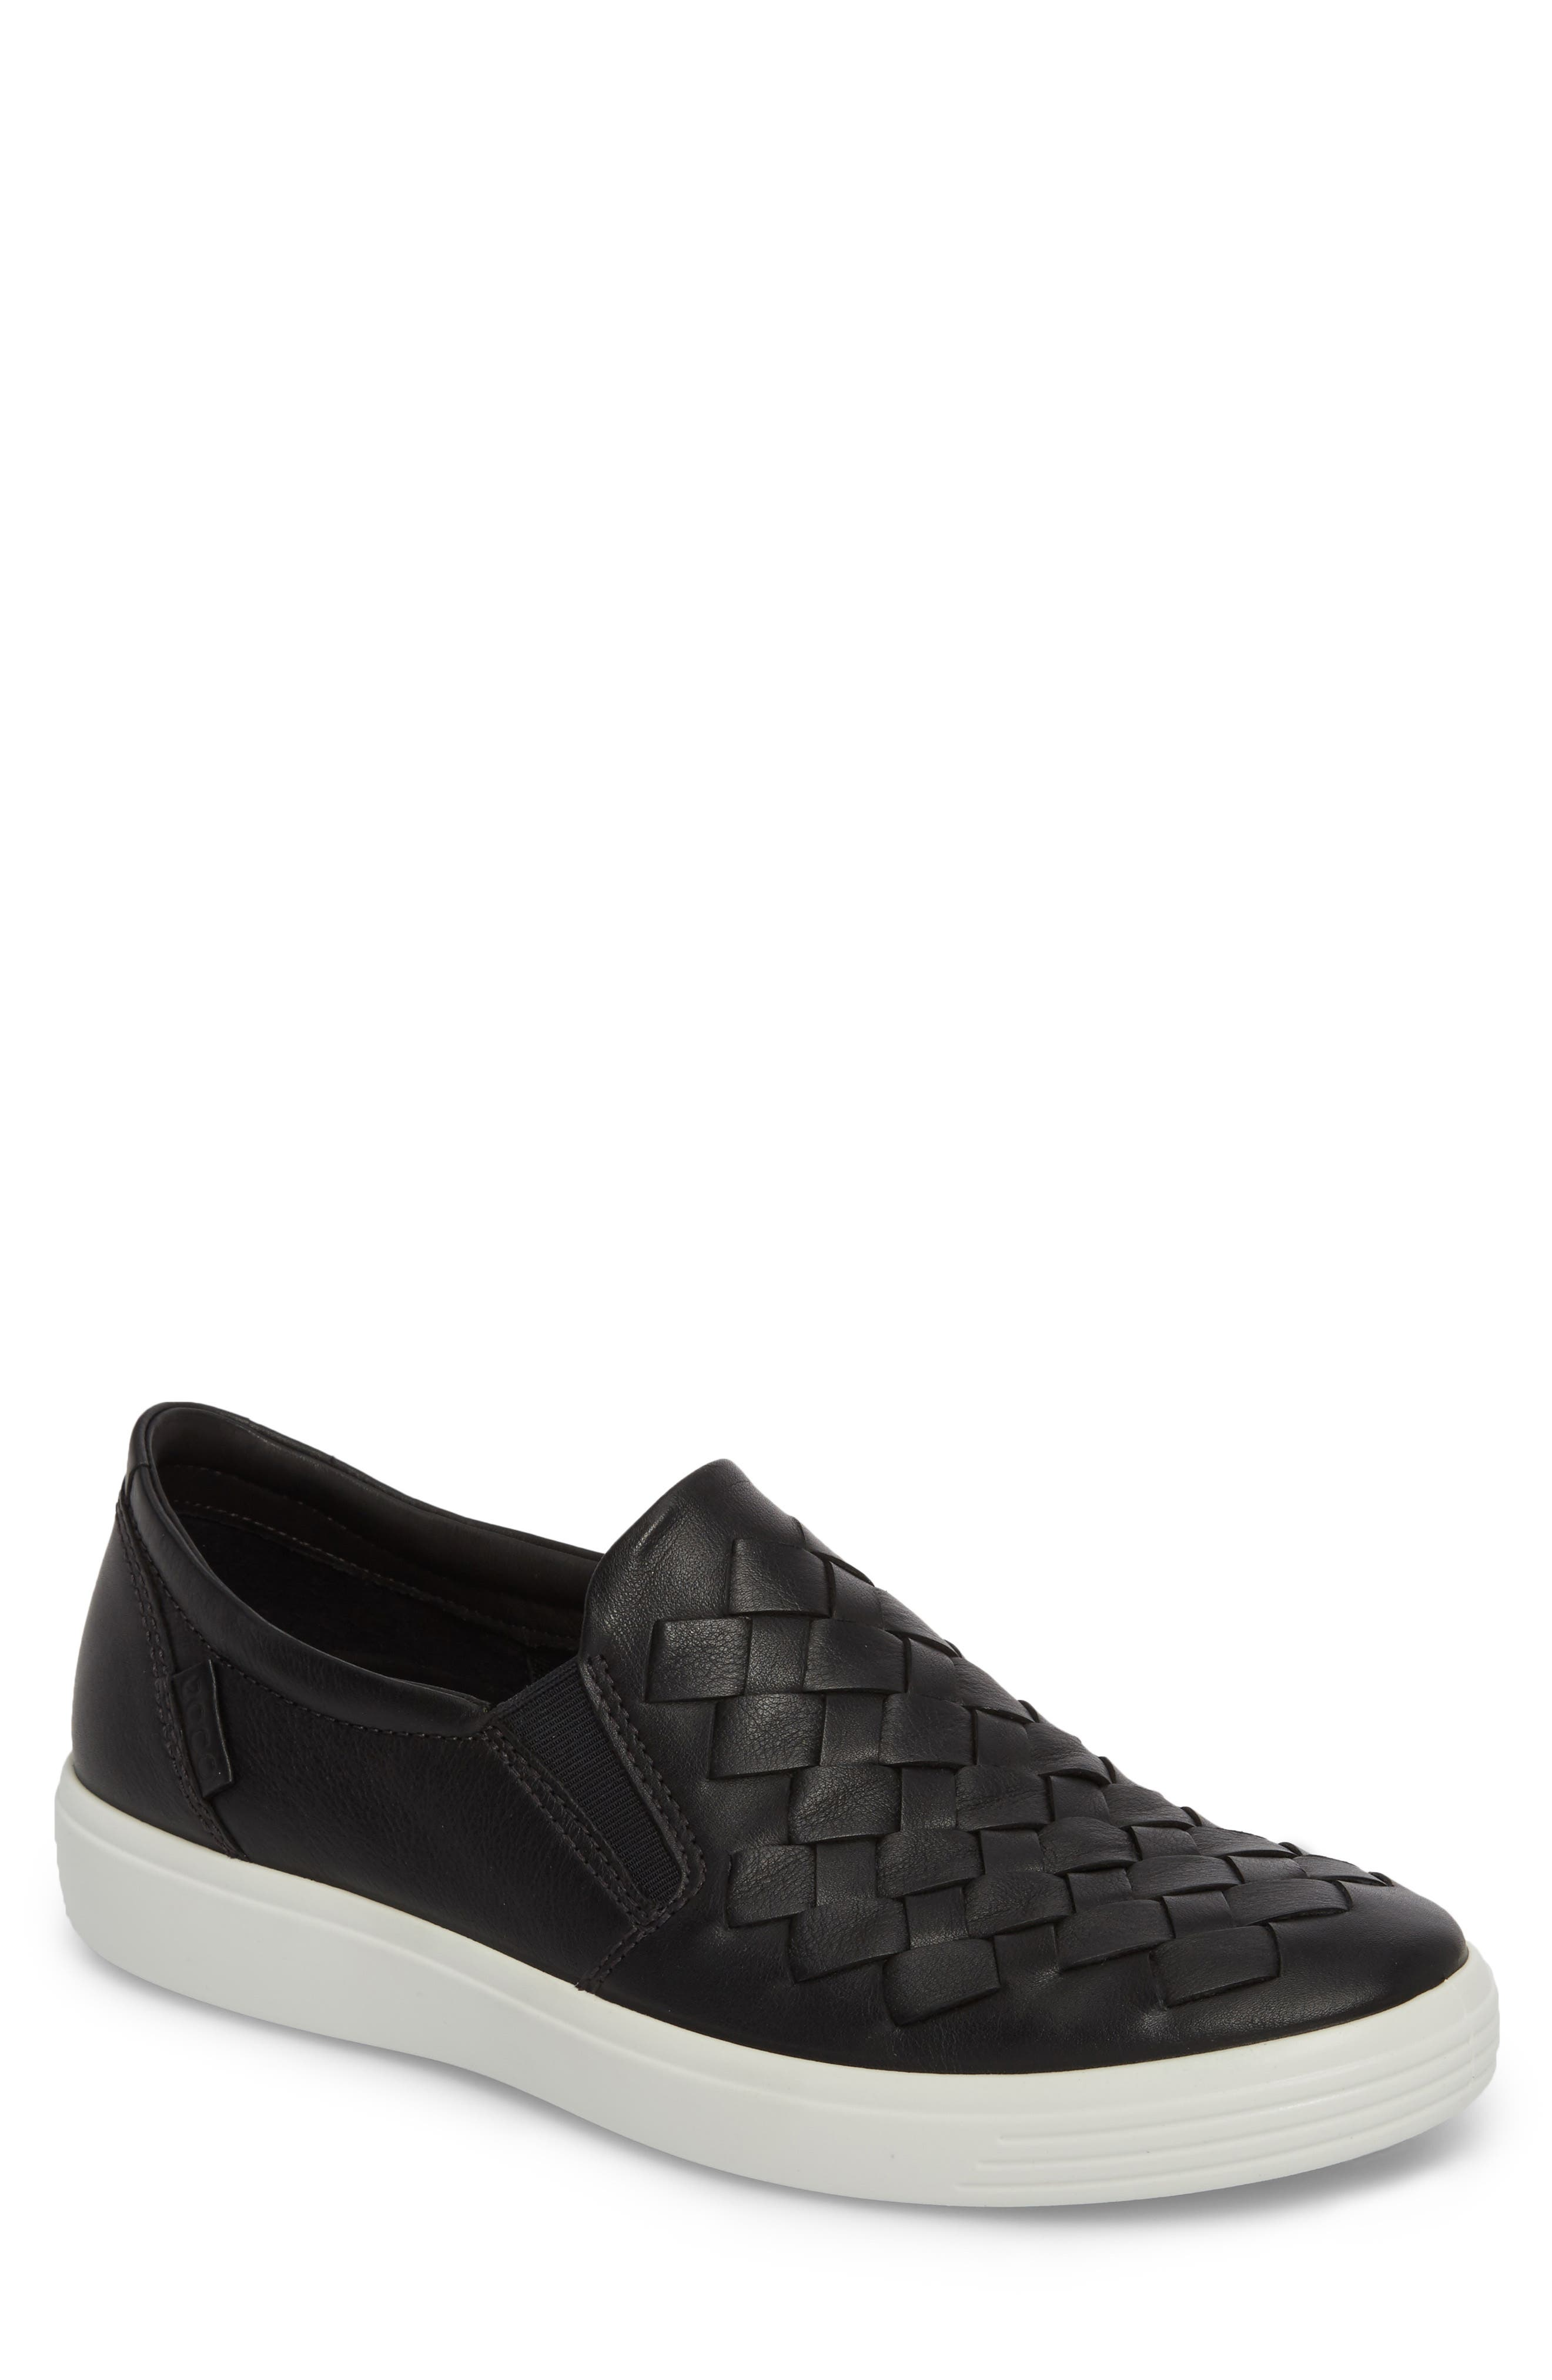 Soft 7 Woven Slip-On Sneaker,                             Main thumbnail 1, color,                             Black Leather